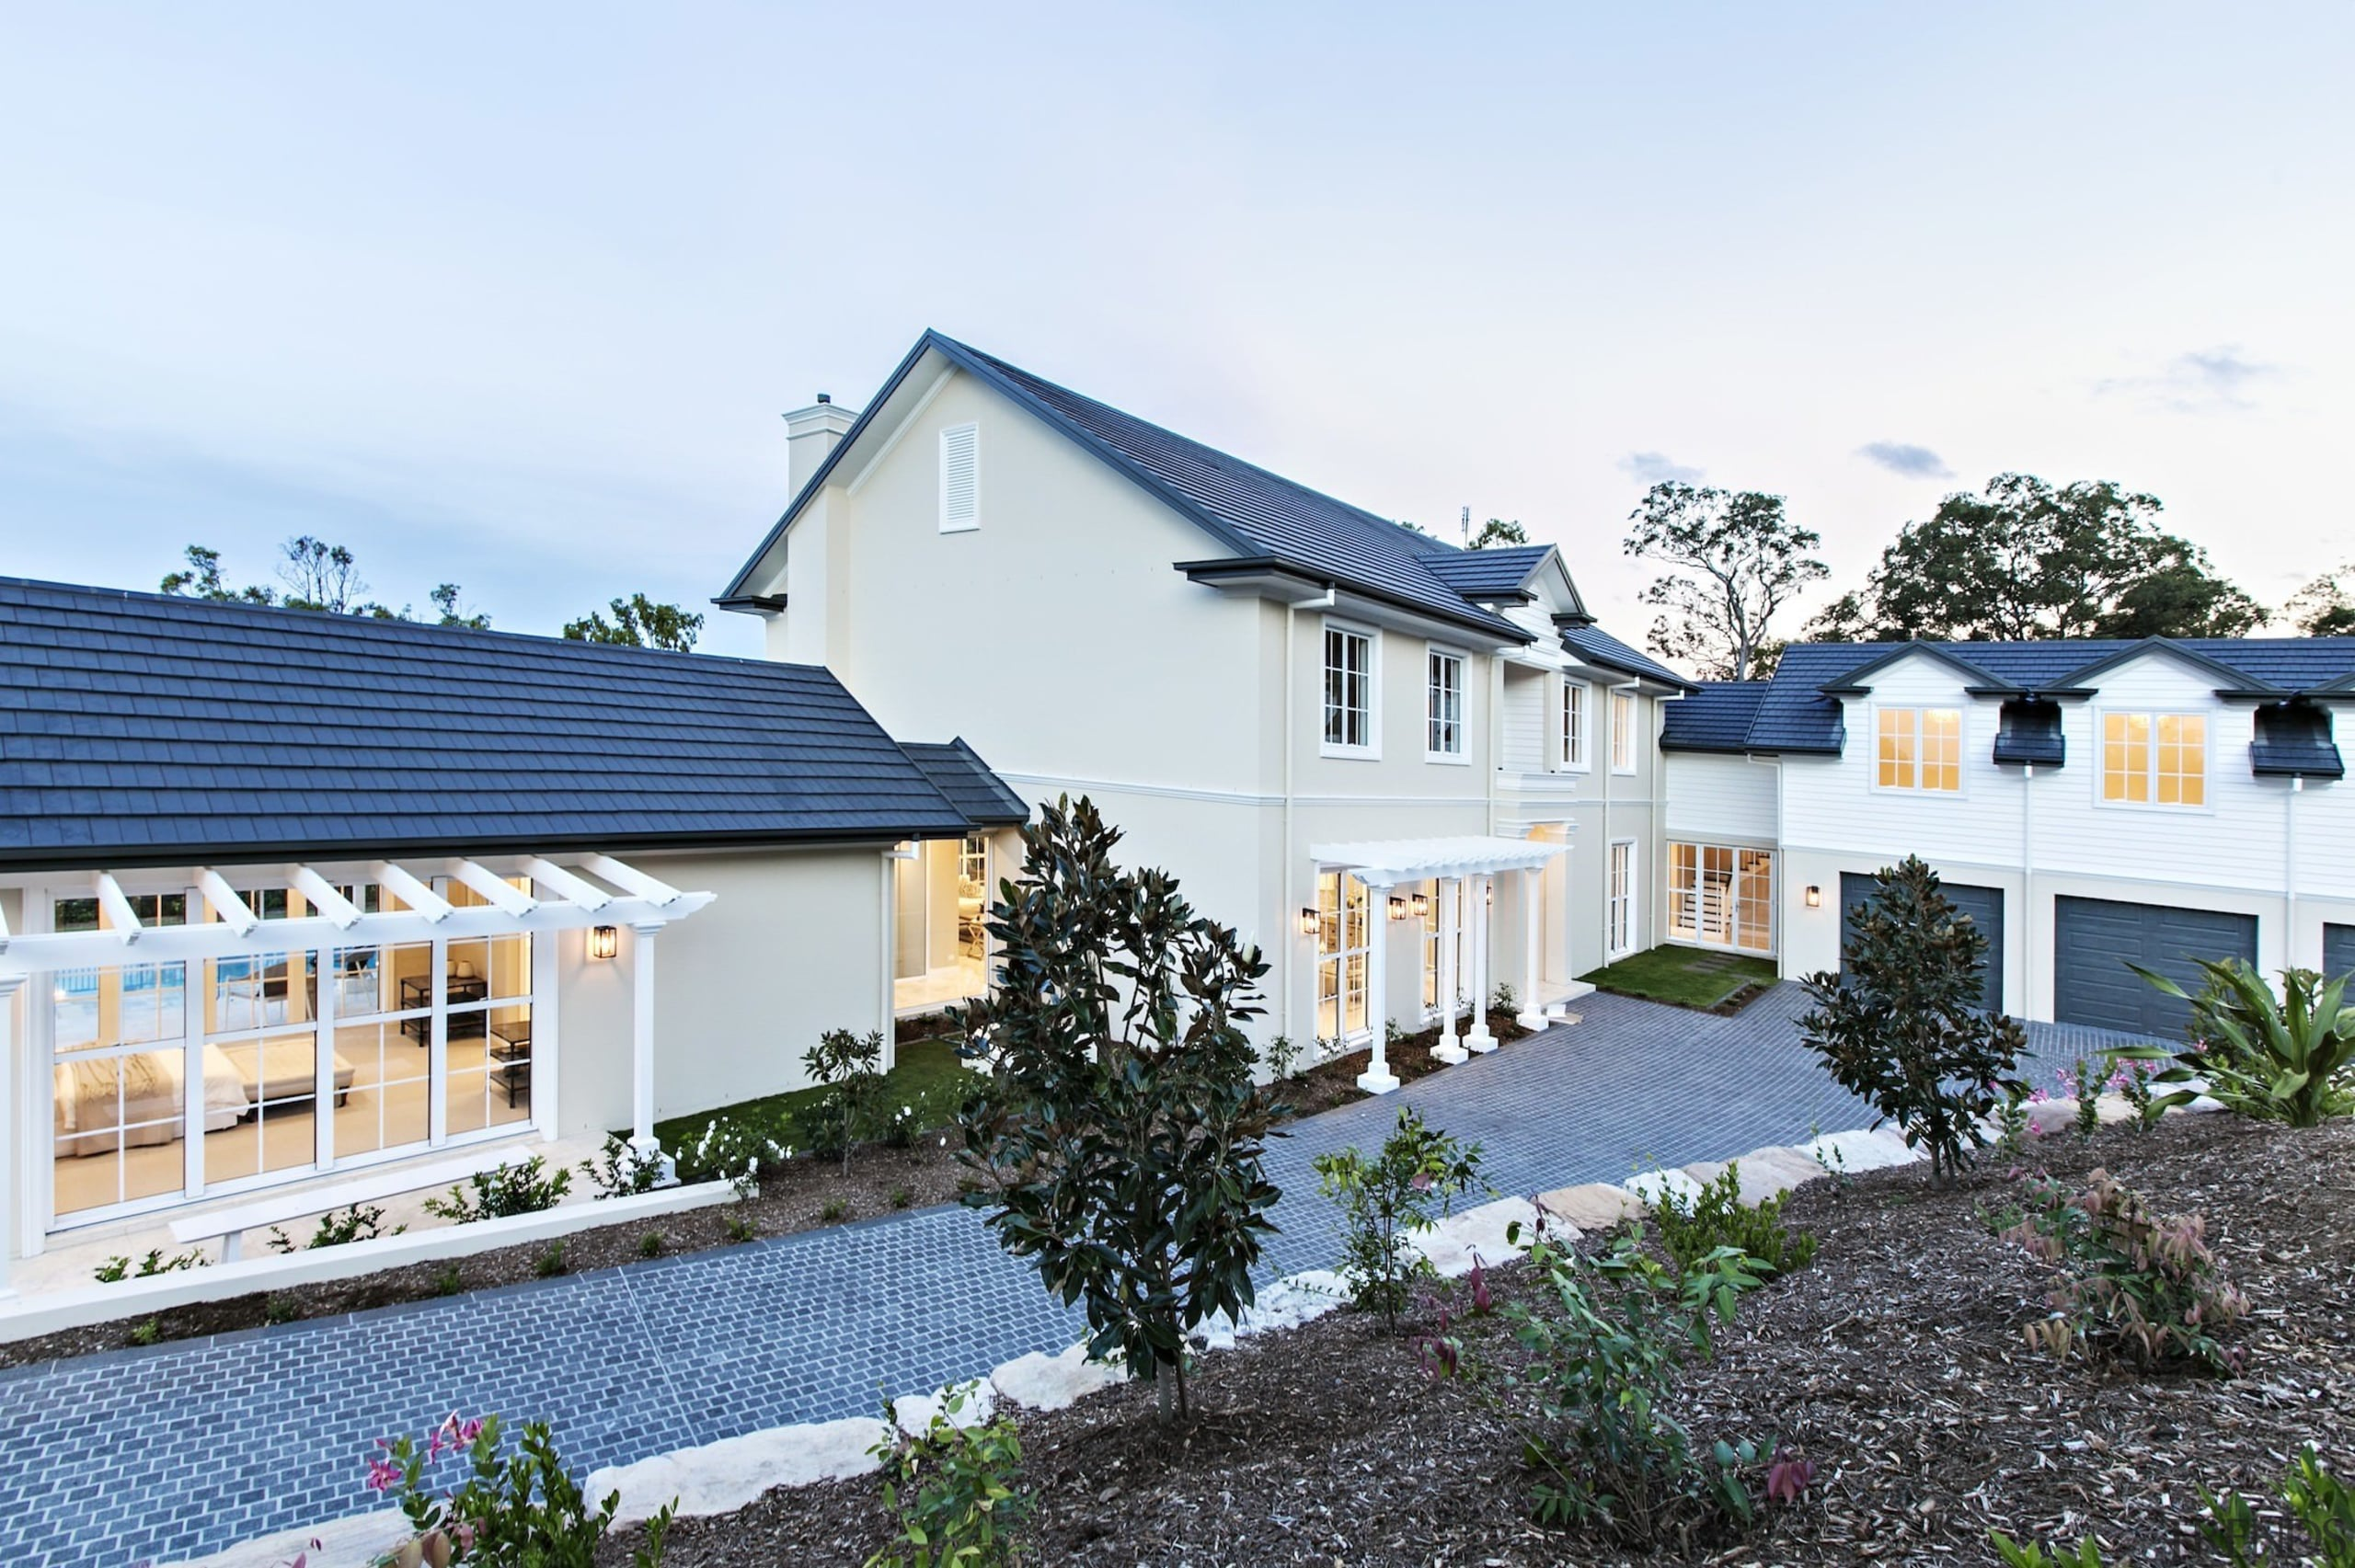 Visit the Monier Roofing website cottage, estate, facade, home, house, property, real estate, residential area, roof, window, white